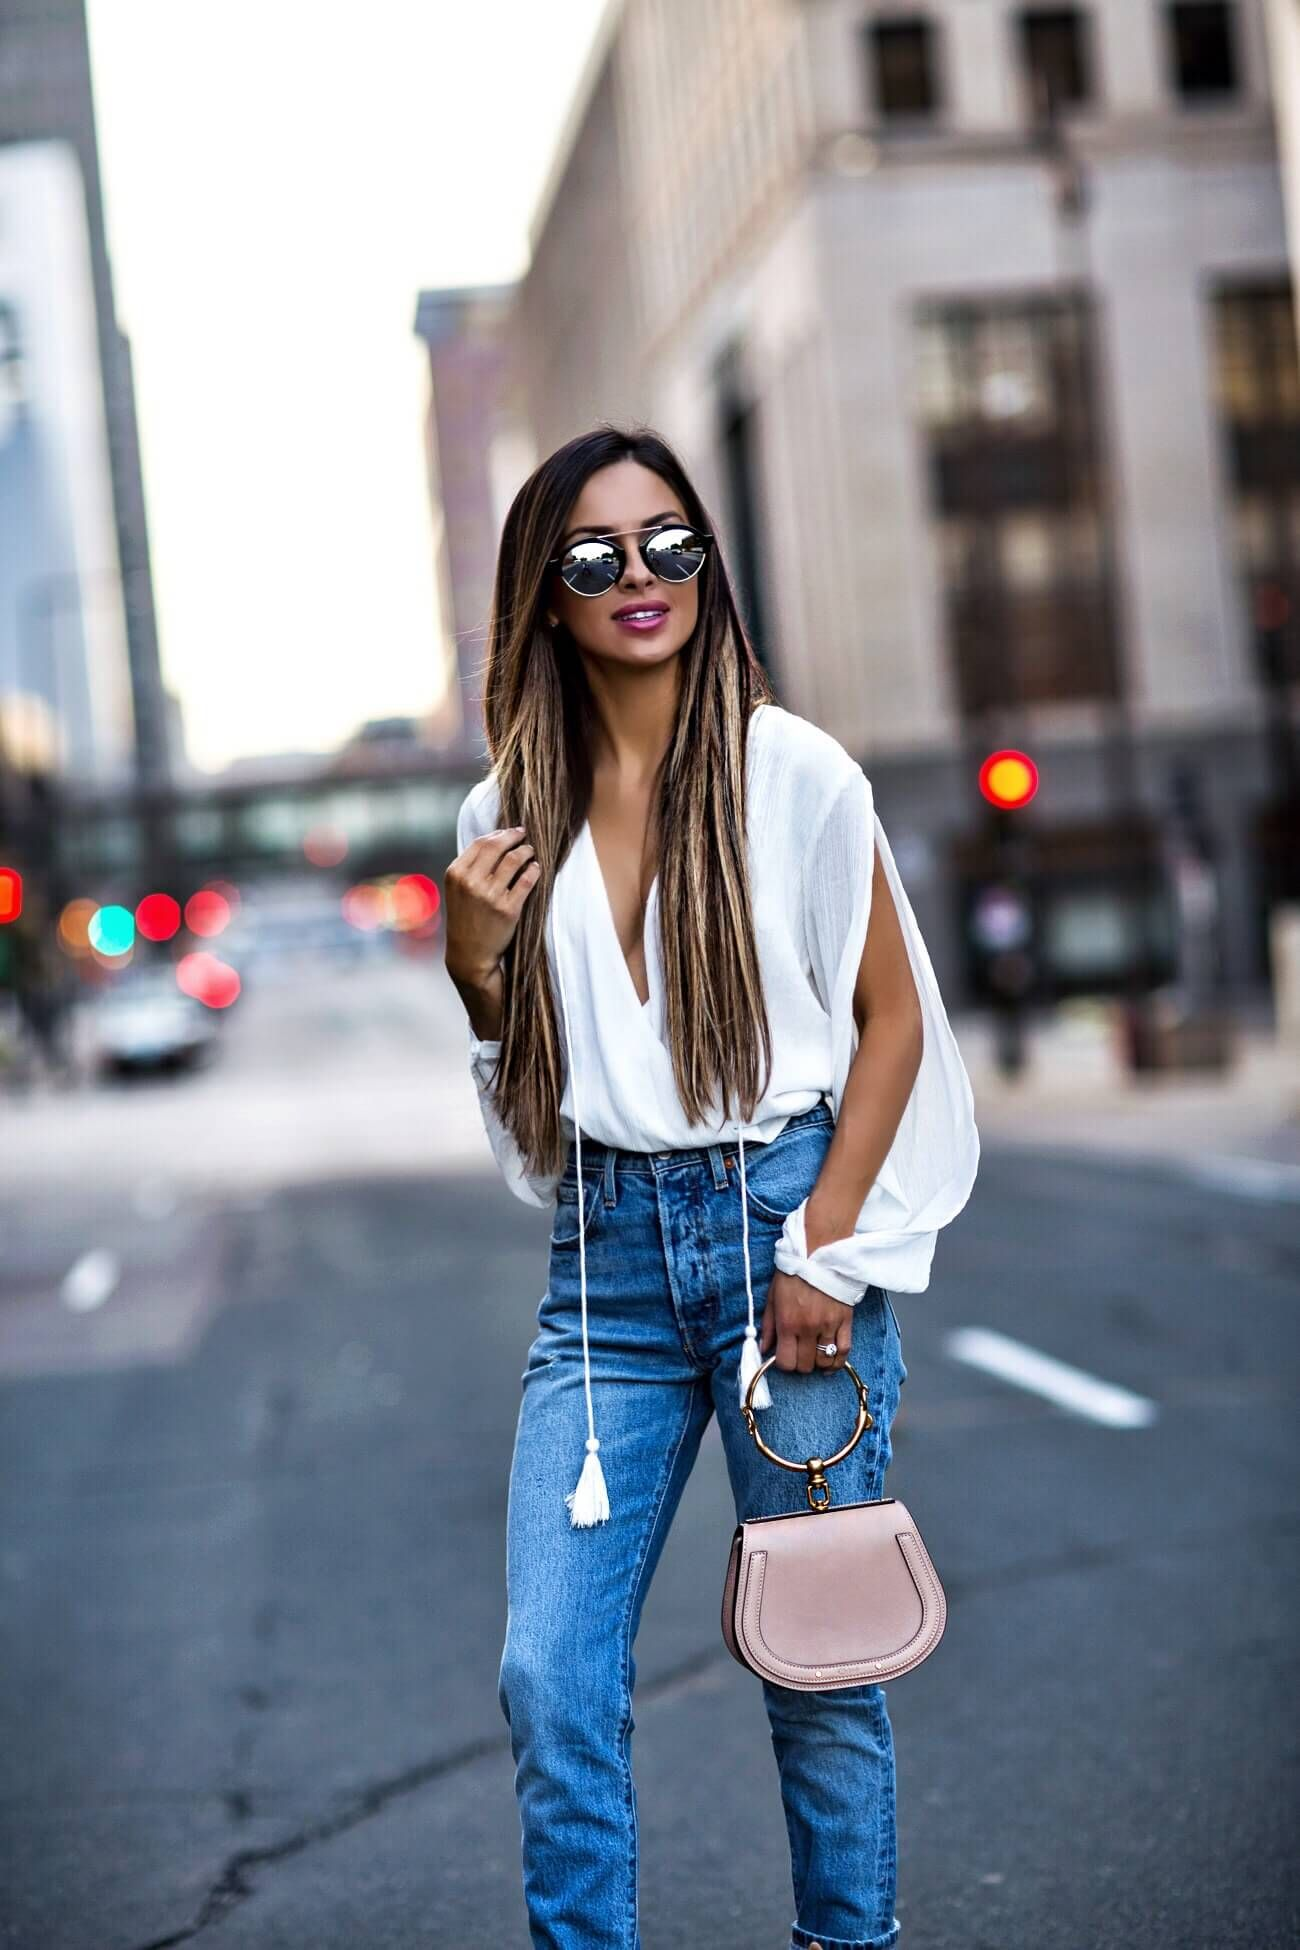 fashion blogger mia mia mine wearing a chloe nile bag from nordstrom and  illesteva sunglasses from net-a-porter d63ab6244